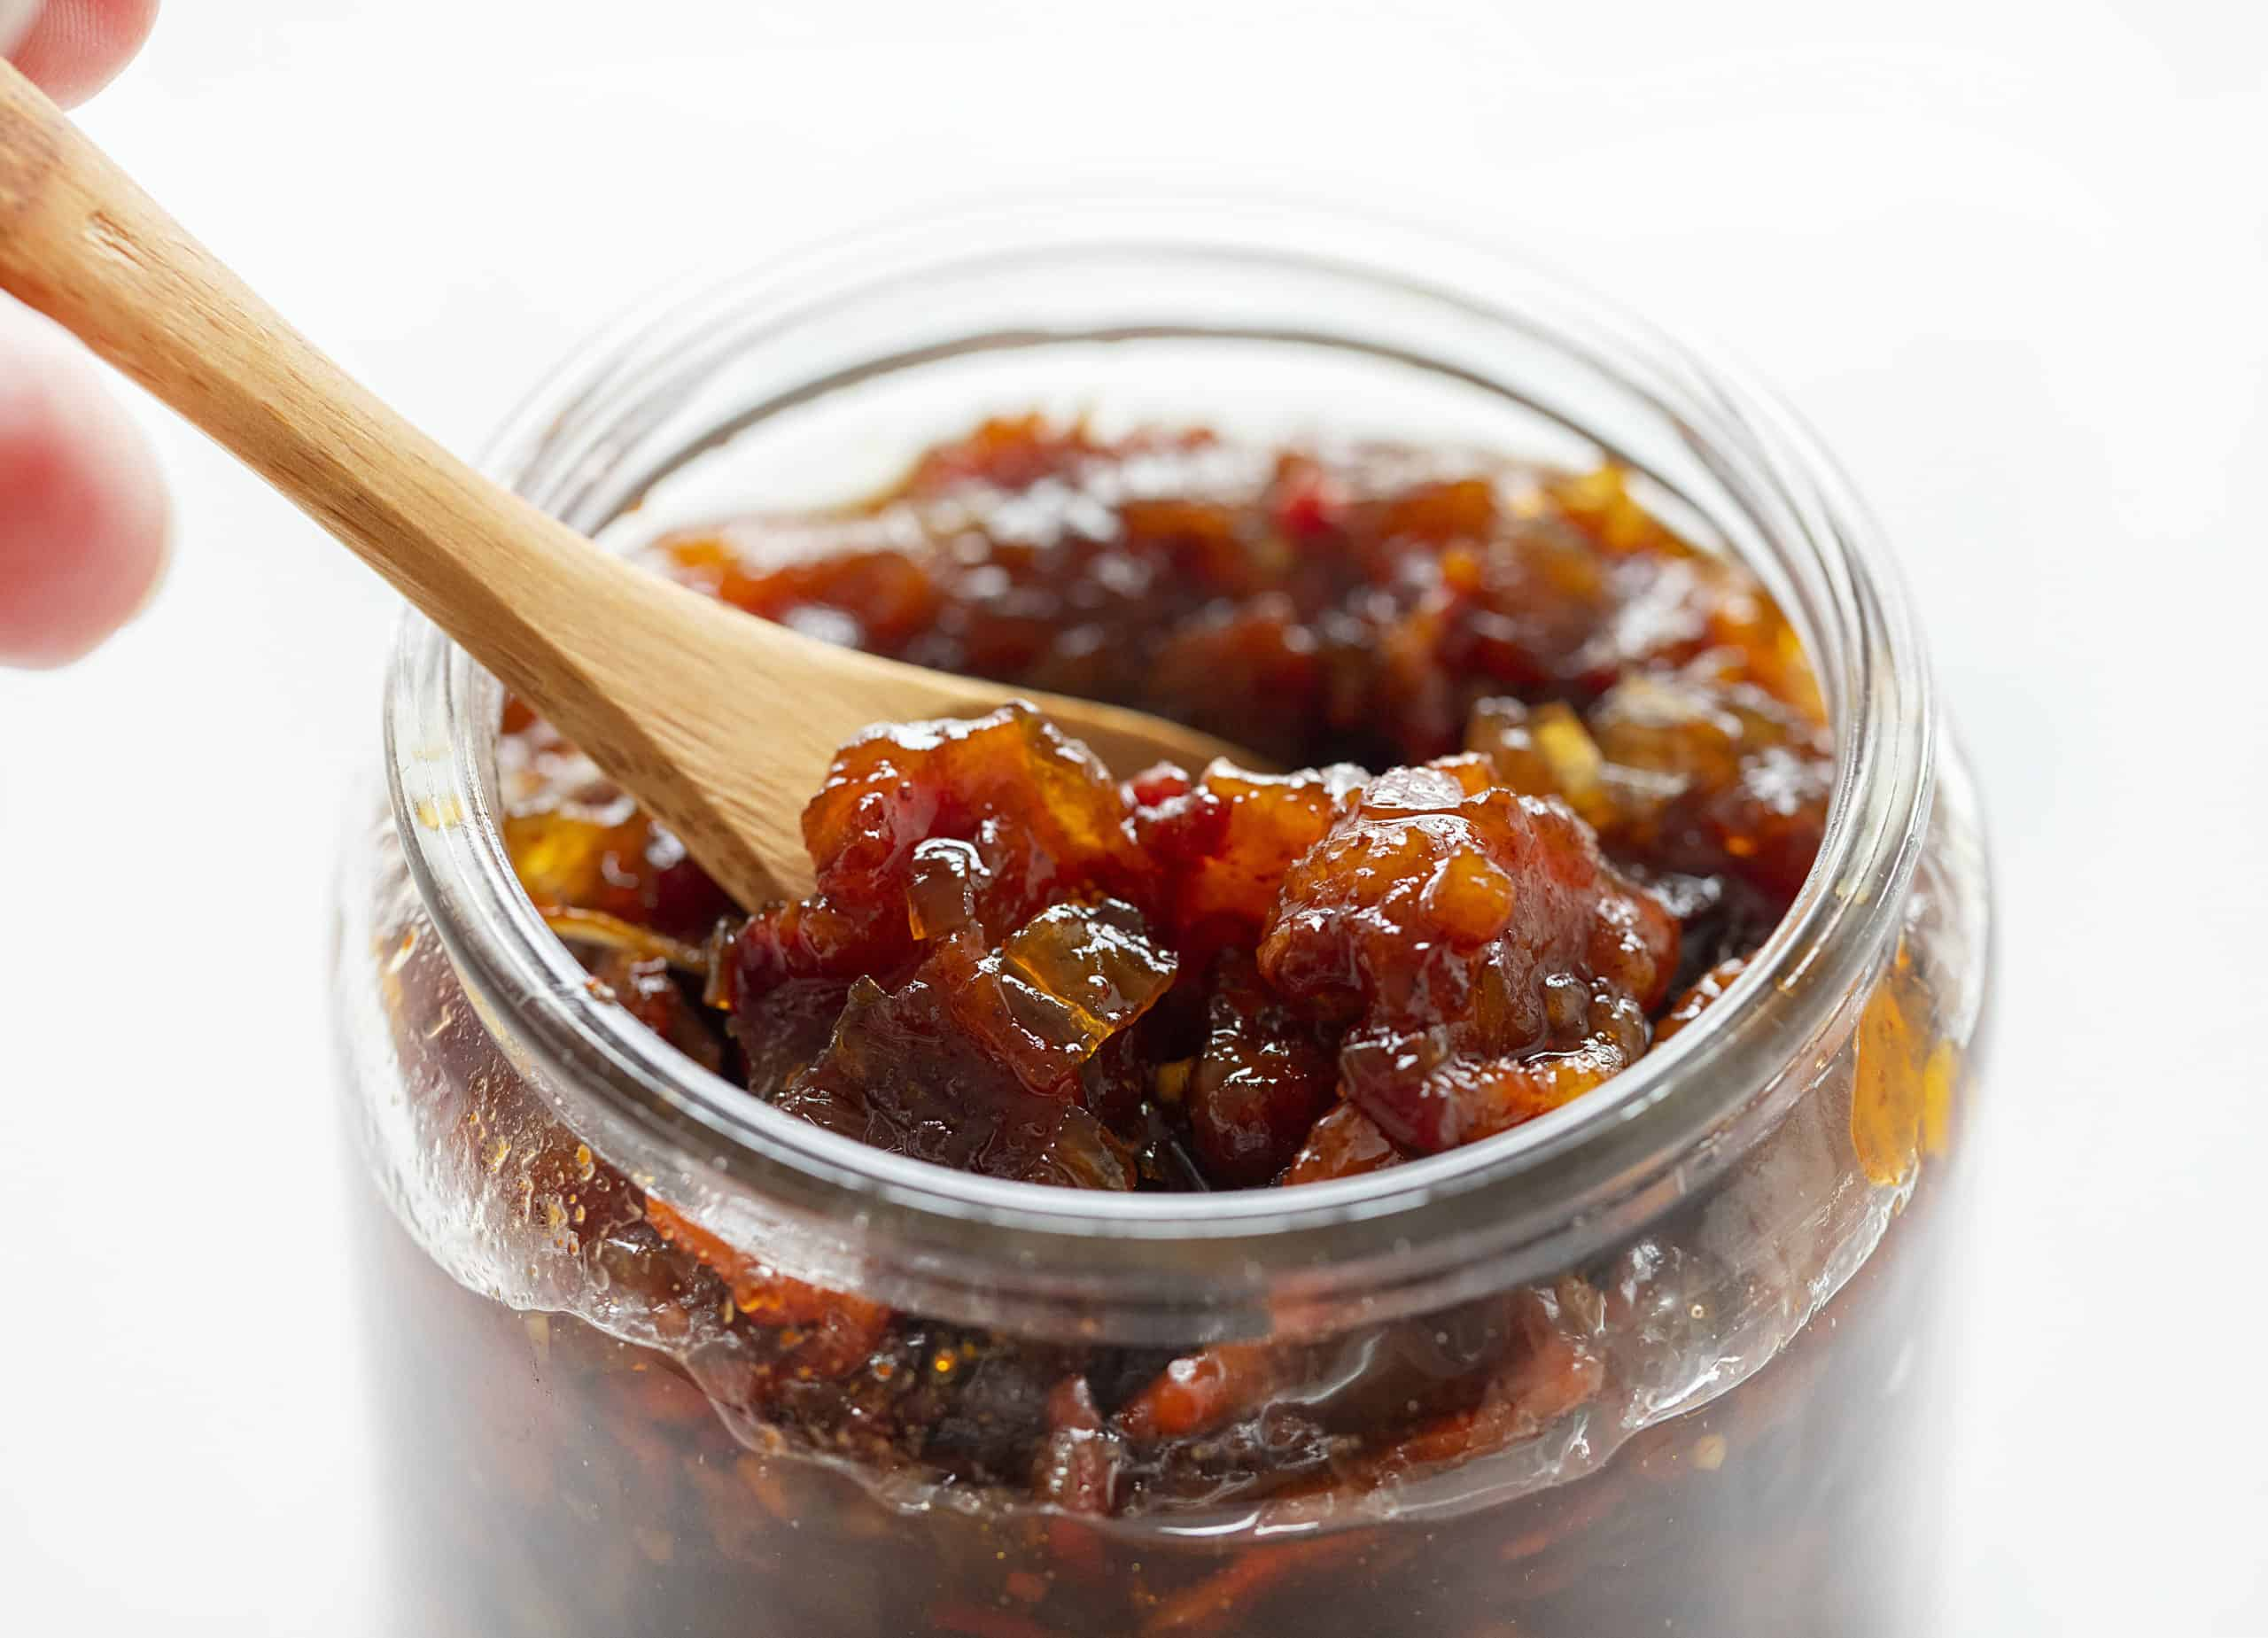 Onion Bacon Jam in a Jar with a Spoon